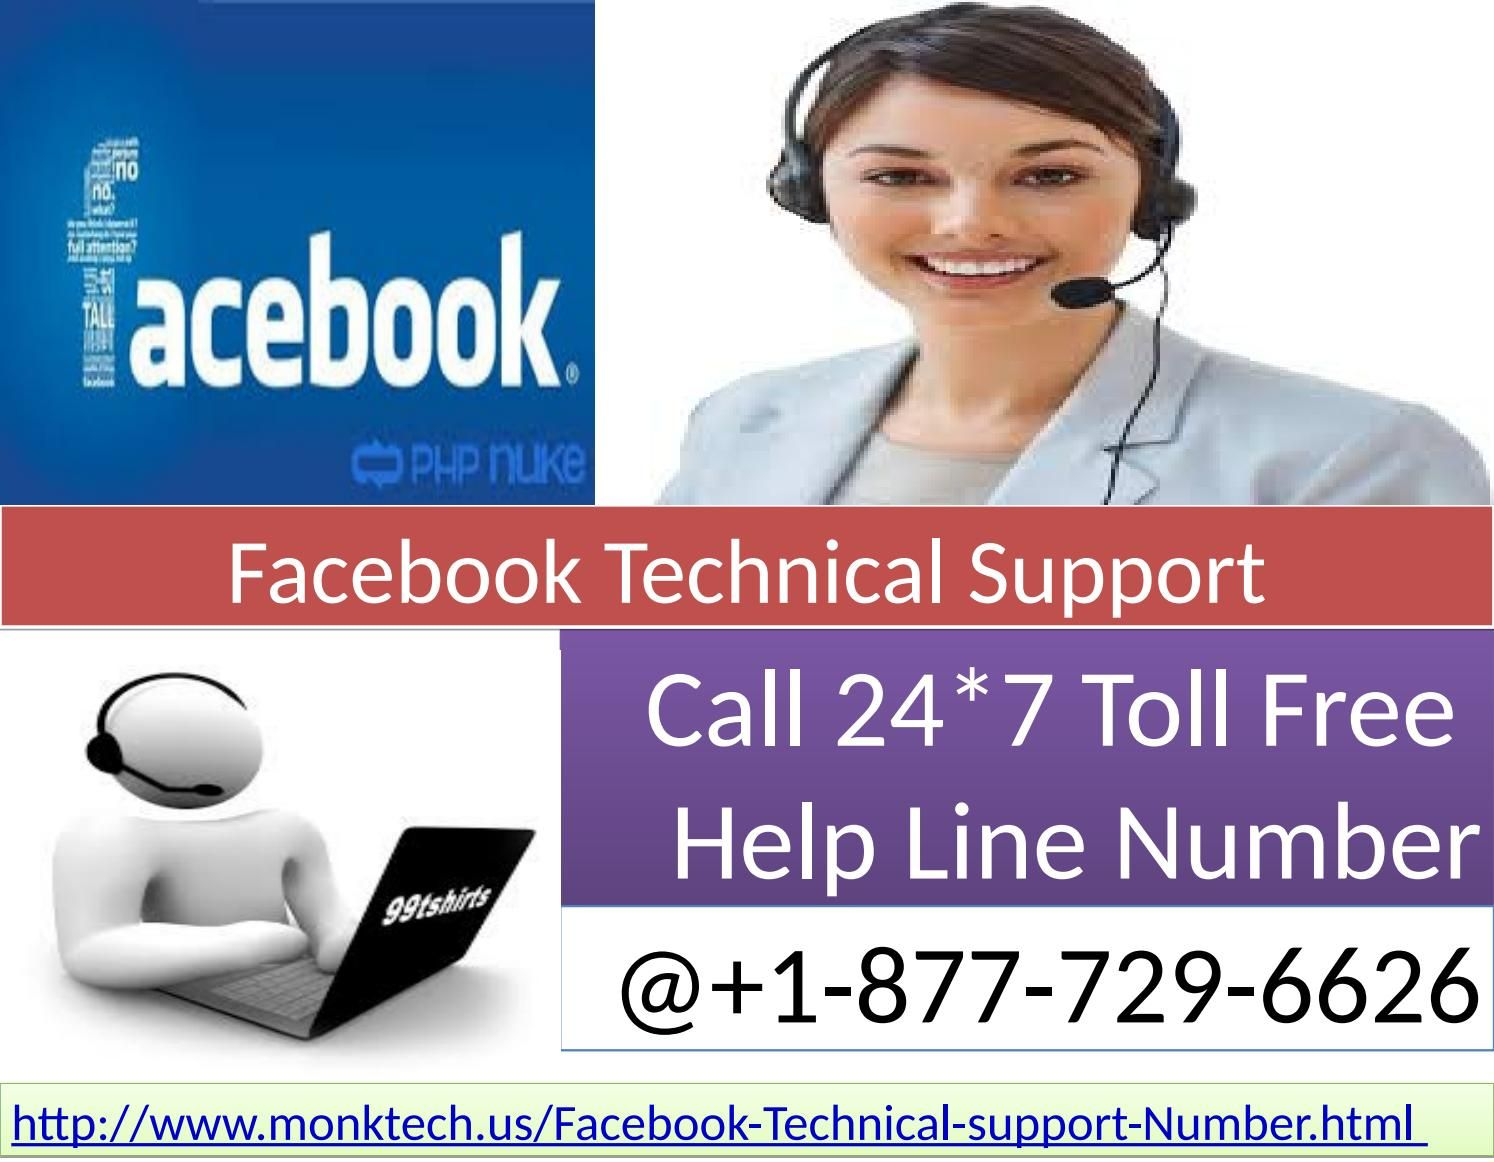 Facebook Technical Support for Facebook Related Problems